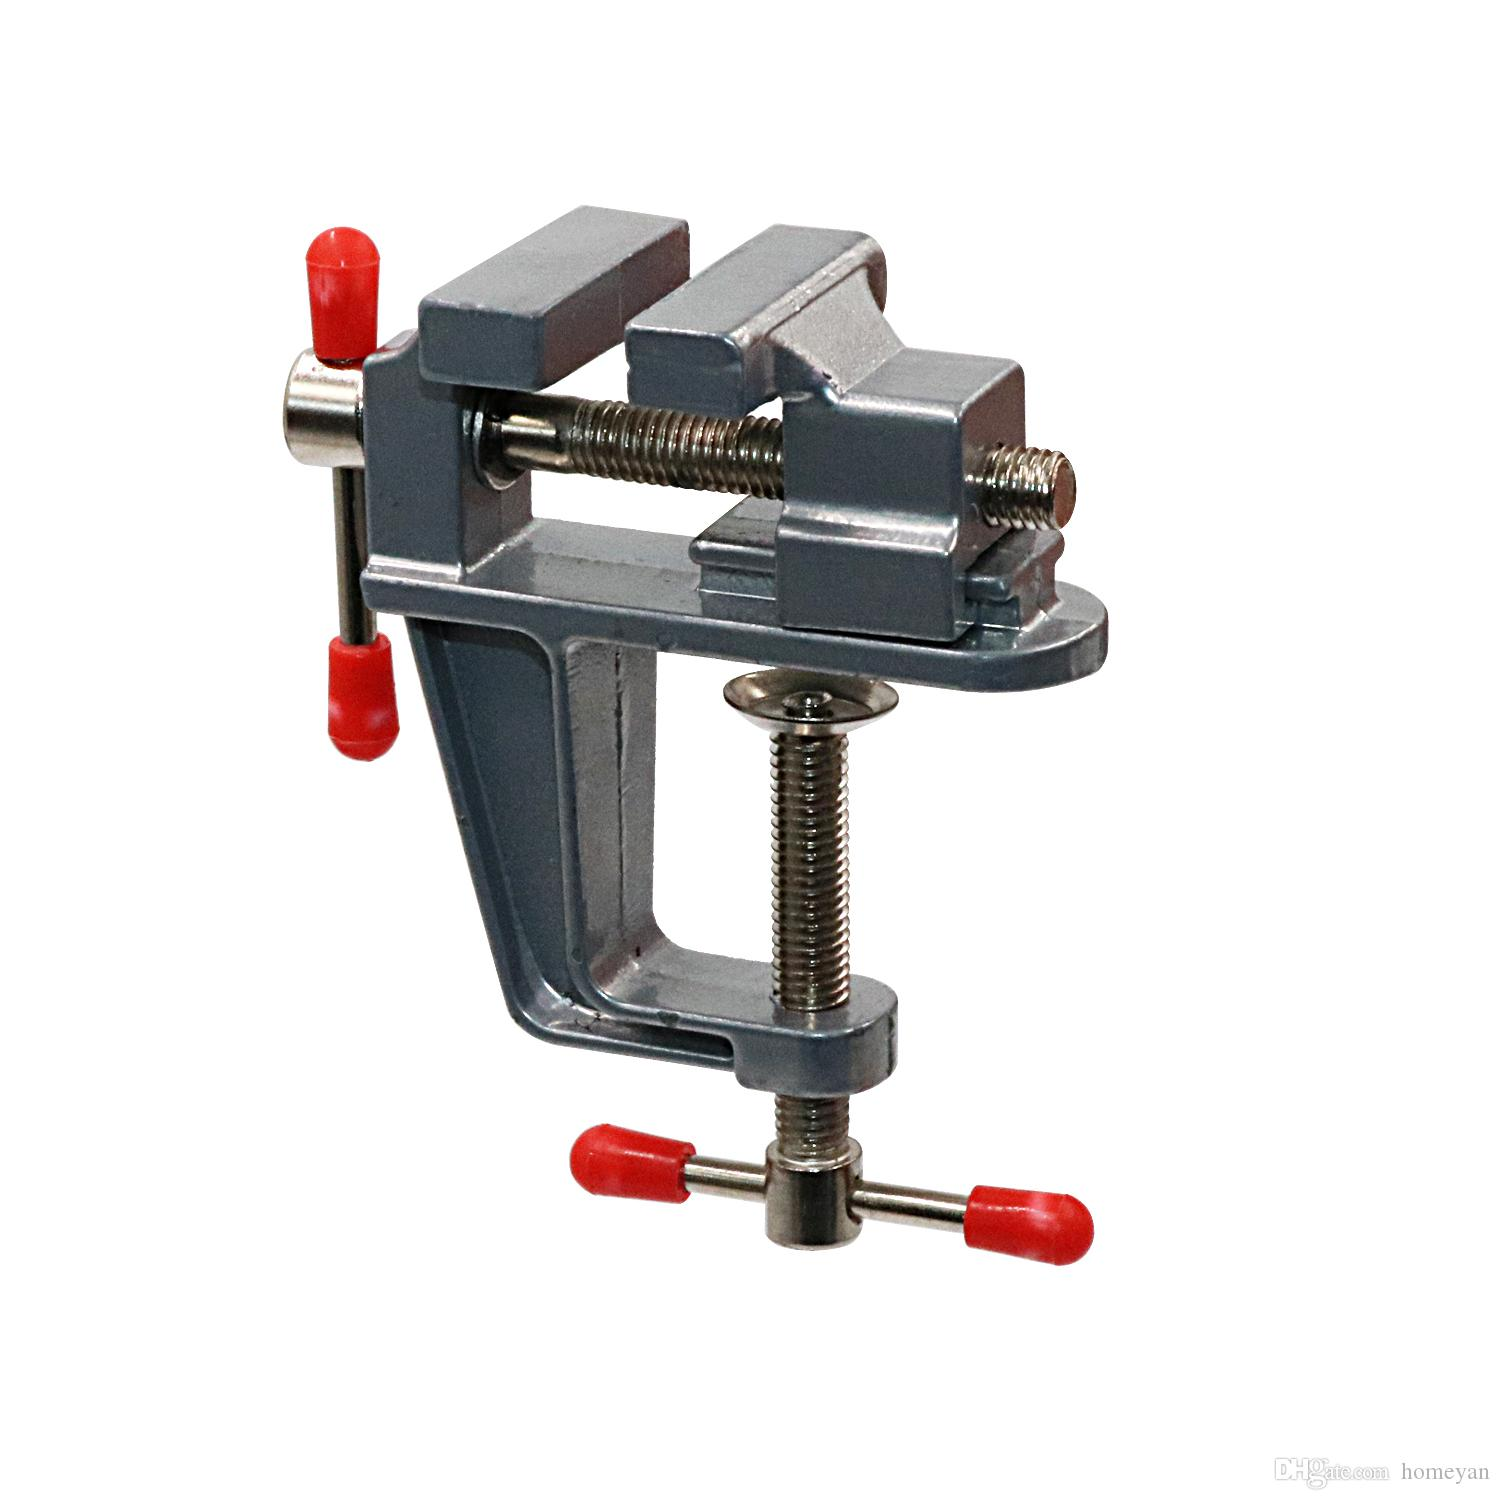 Wondrous Mini Table Clamp Small Bench Vice Jewelers Hobby Clamps Craft Repair Tool Portable Work Bench Vise Uk 2019 From Homeyan Gbp 9 03 Dhgate Uk Customarchery Wood Chair Design Ideas Customarcherynet